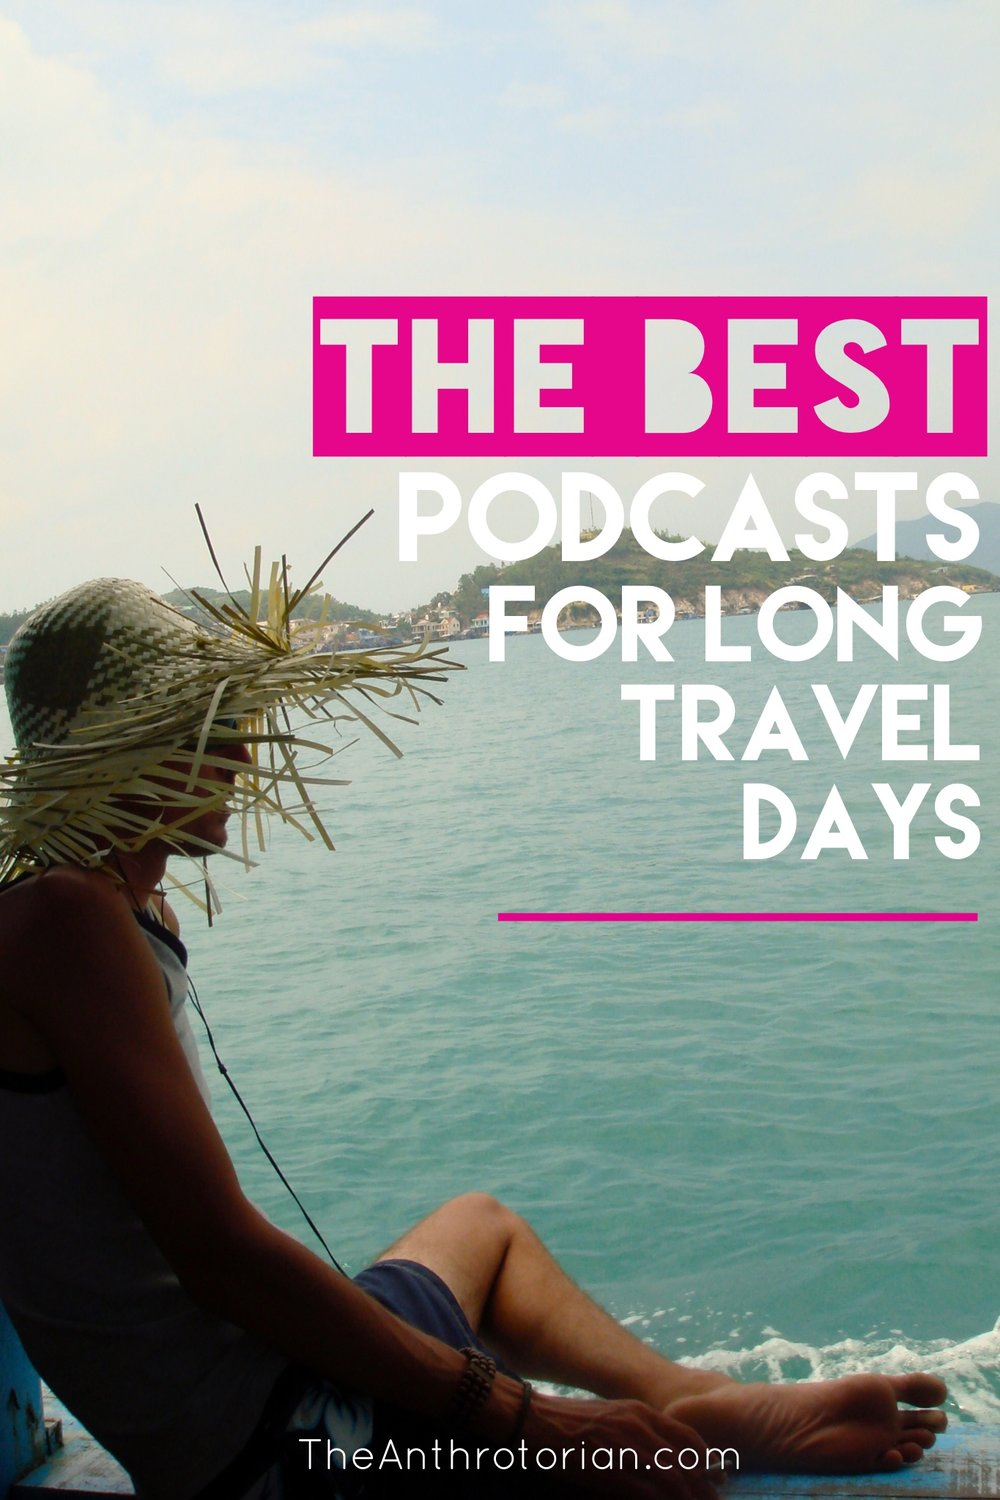 The Best Podcasts for Travelling